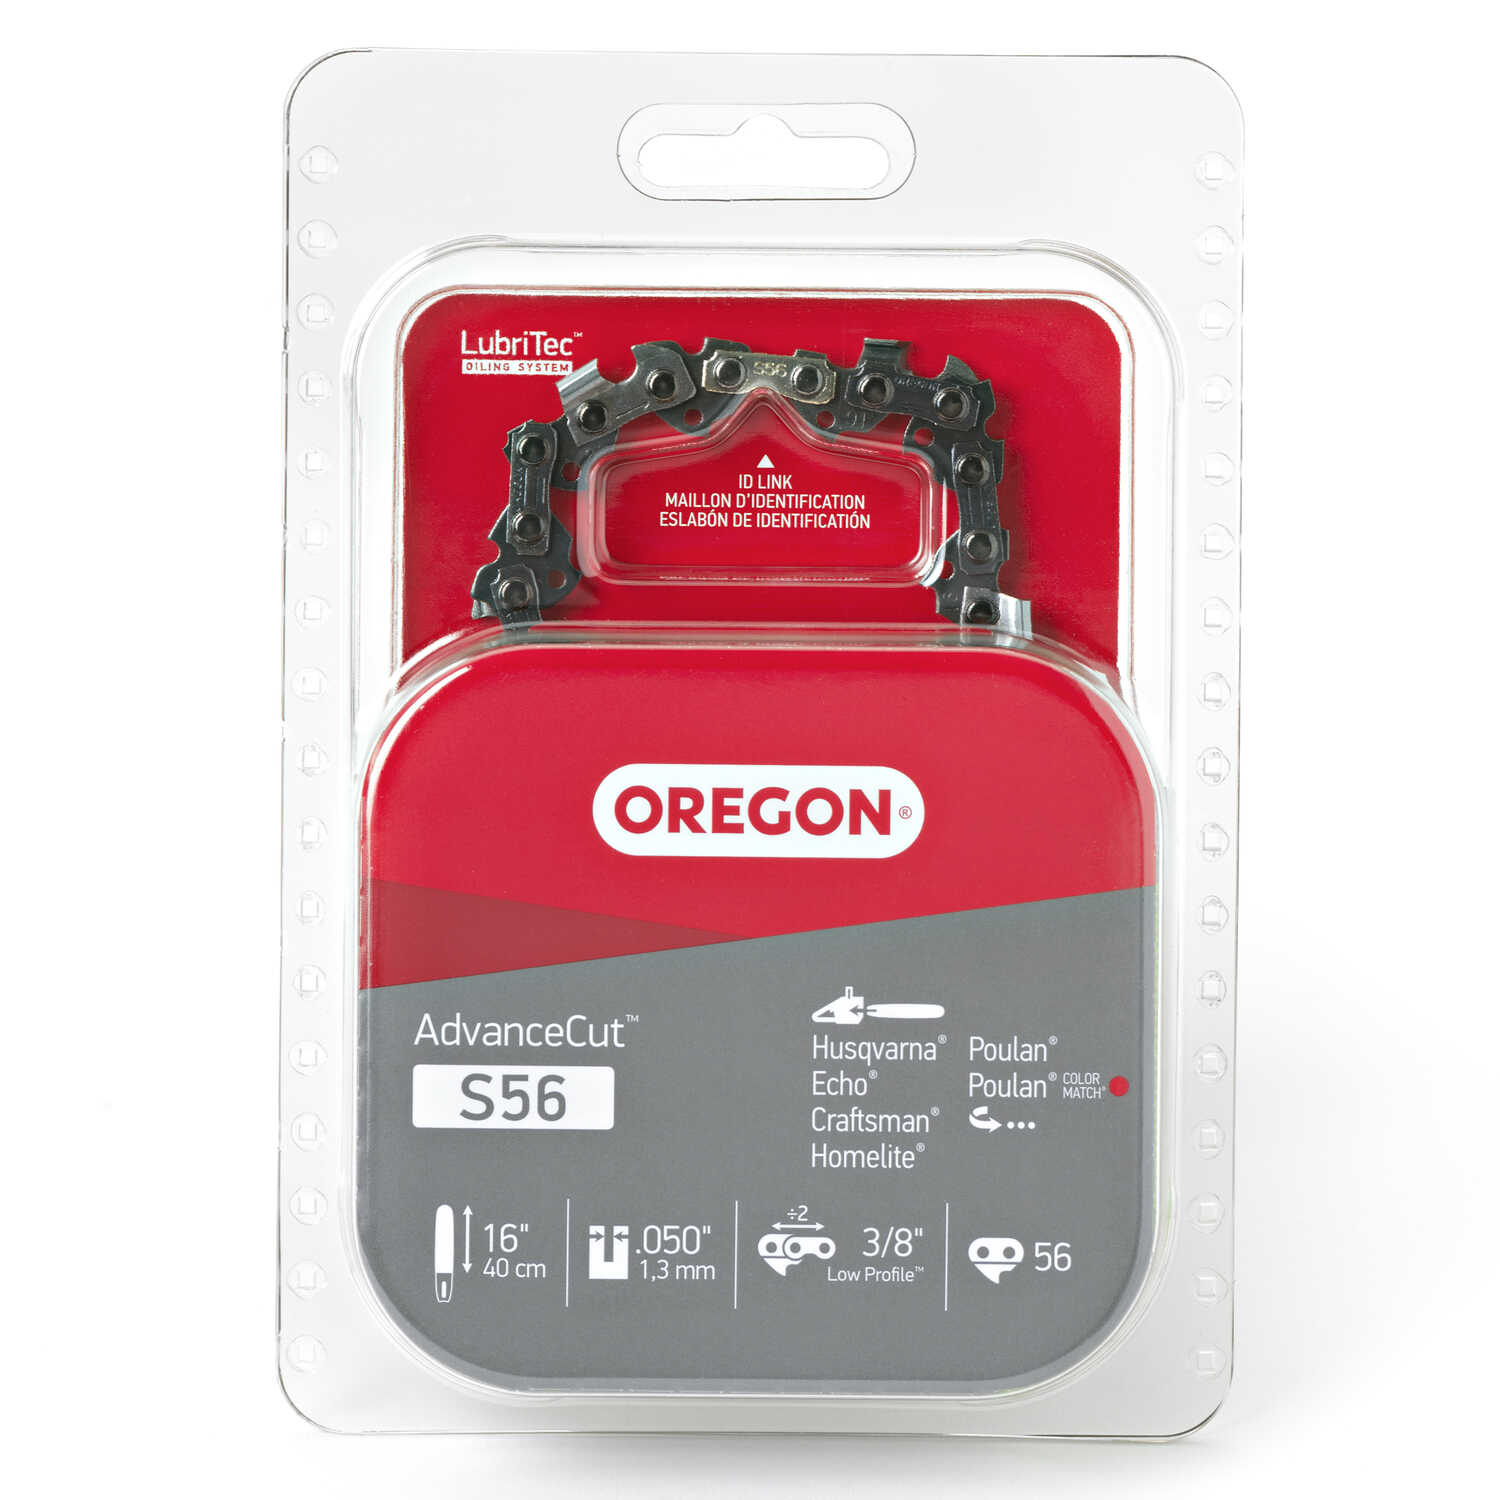 Oregon Advance Cut 16 in  56 links Chainsaw Chain - Ace Hardware